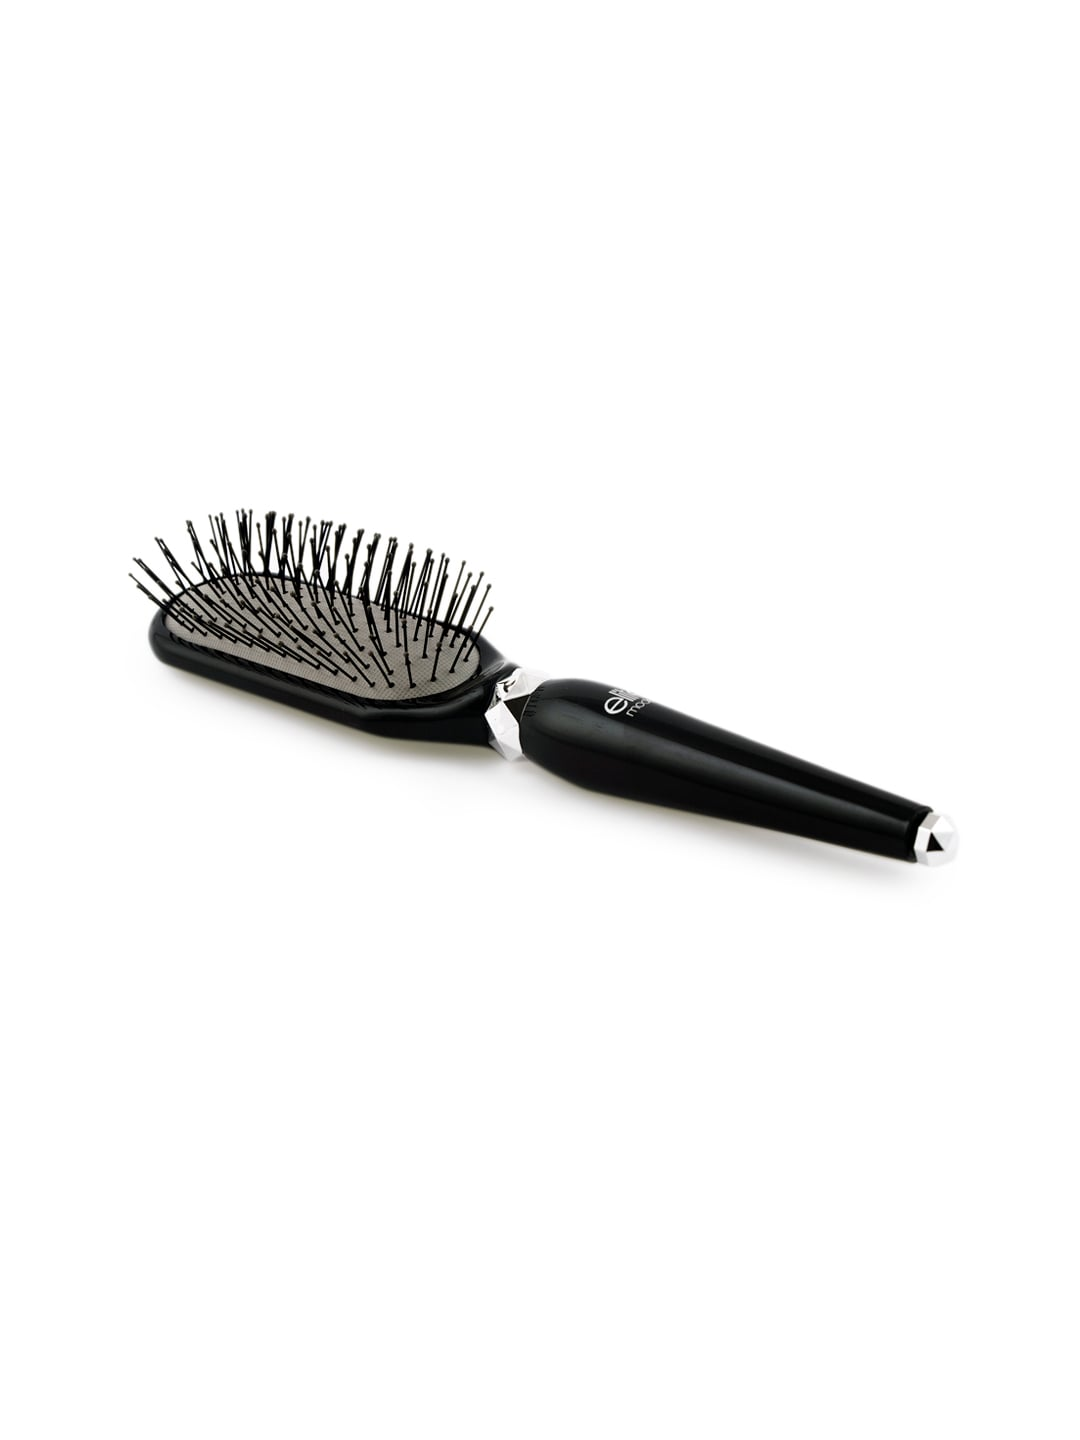 elite models Women Black Plastic Bristles Paddle Hair Brush image